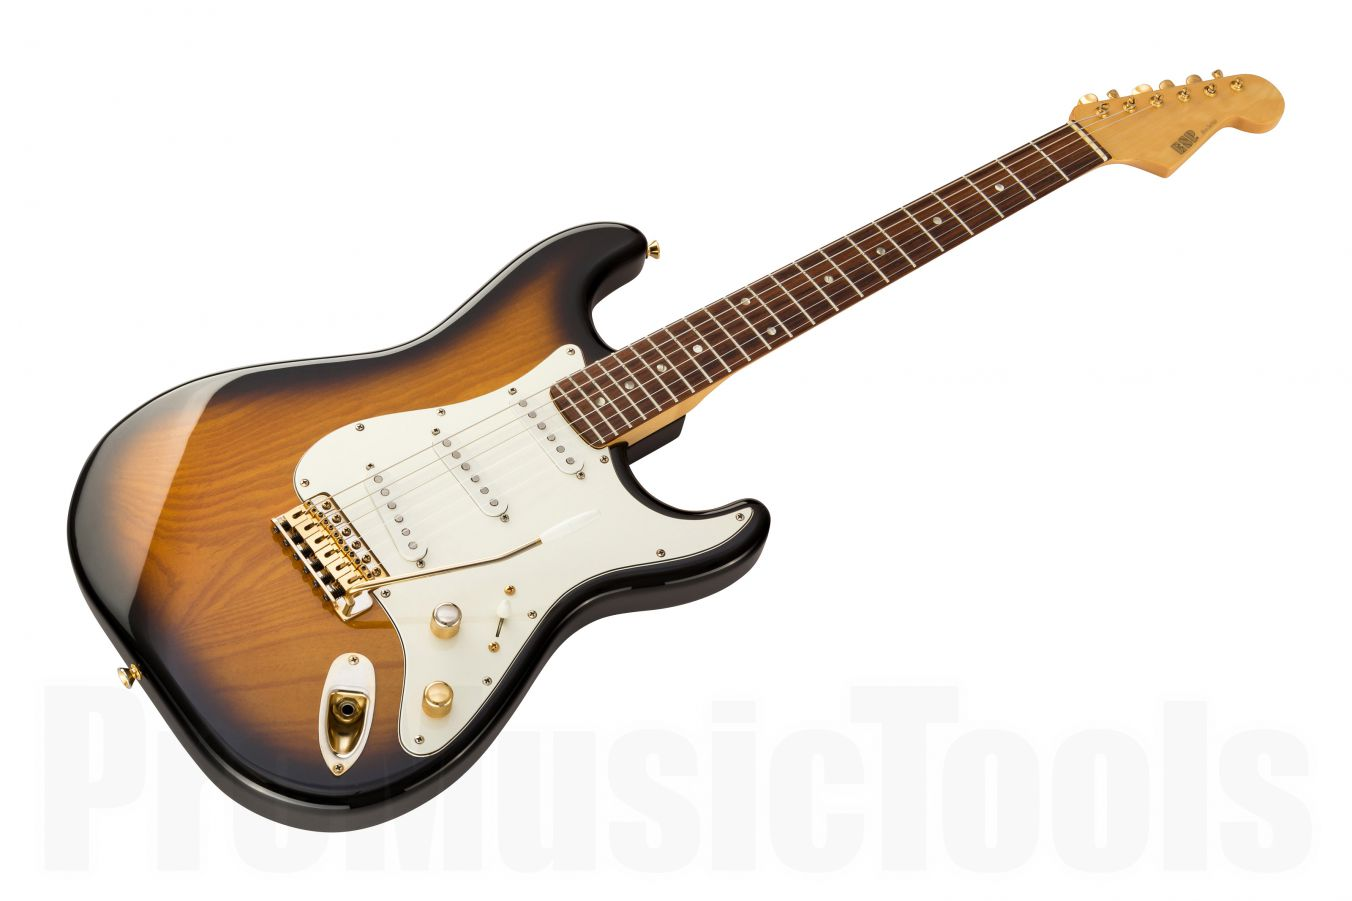 ESP 800 Series Custom Shop Strat 2TB - 2-Tone Sunburst